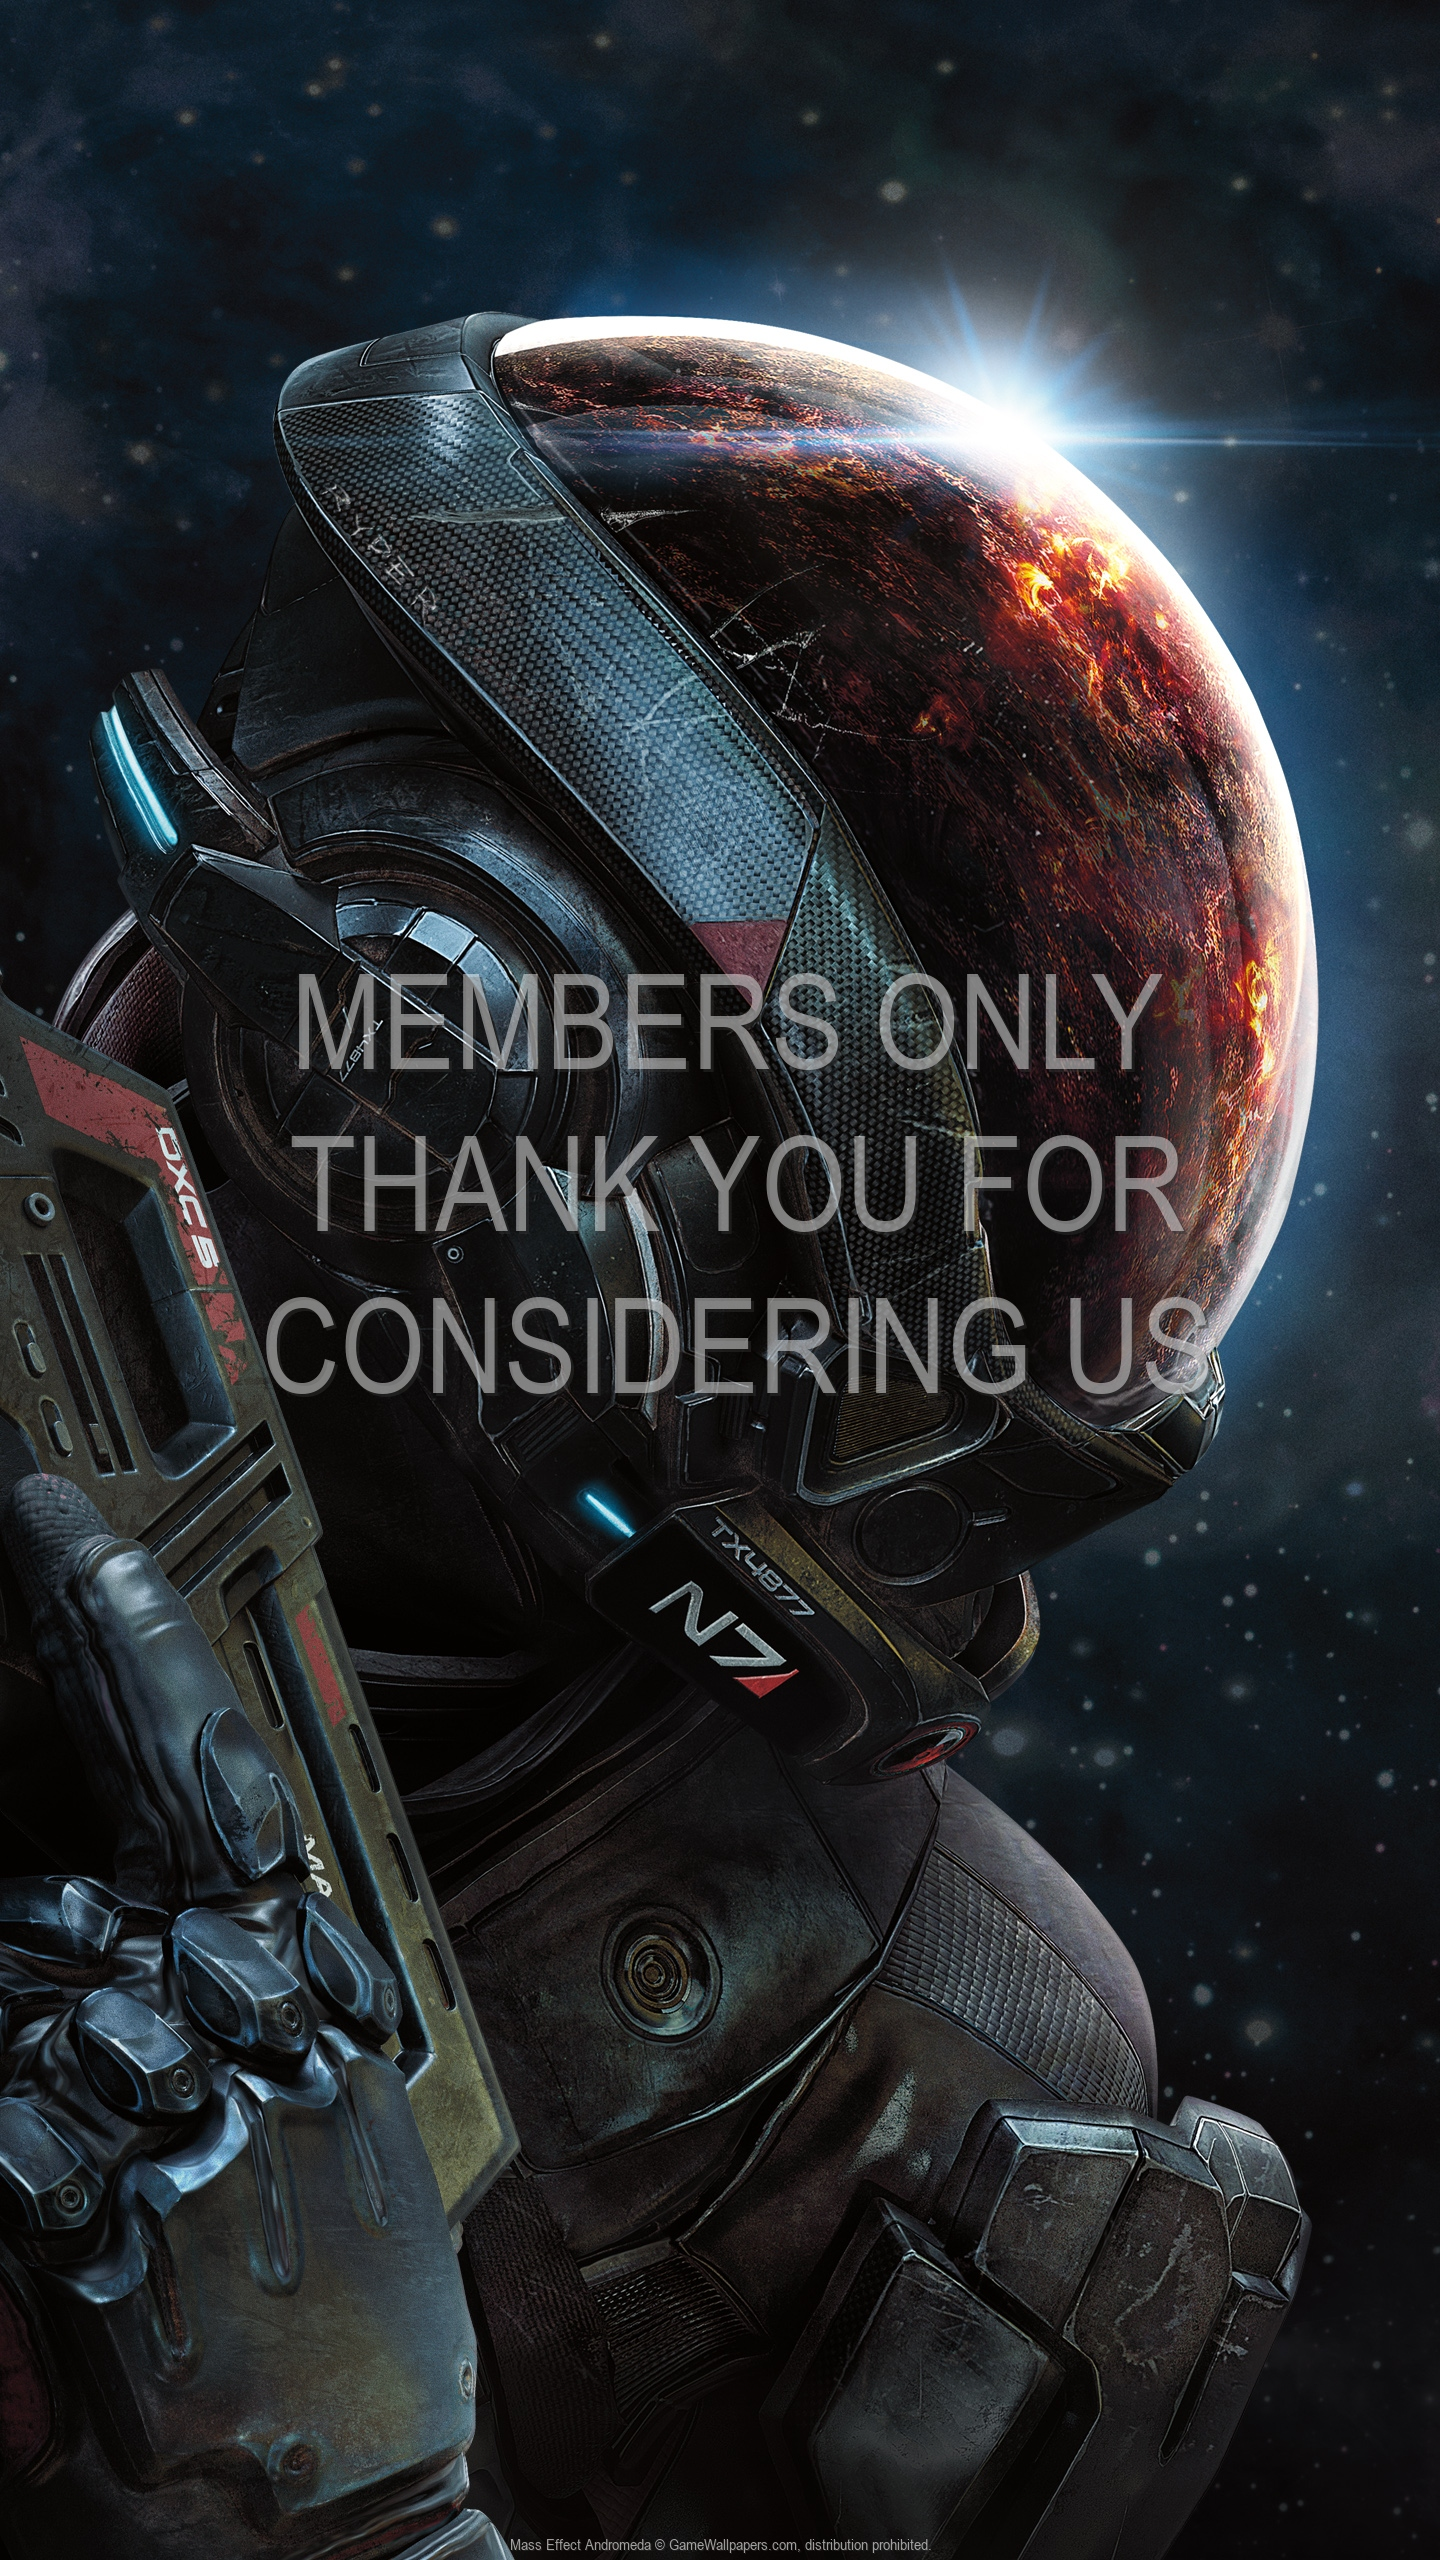 Mass Effect: Andromeda 1920x1080 Mobiele achtergrond 01